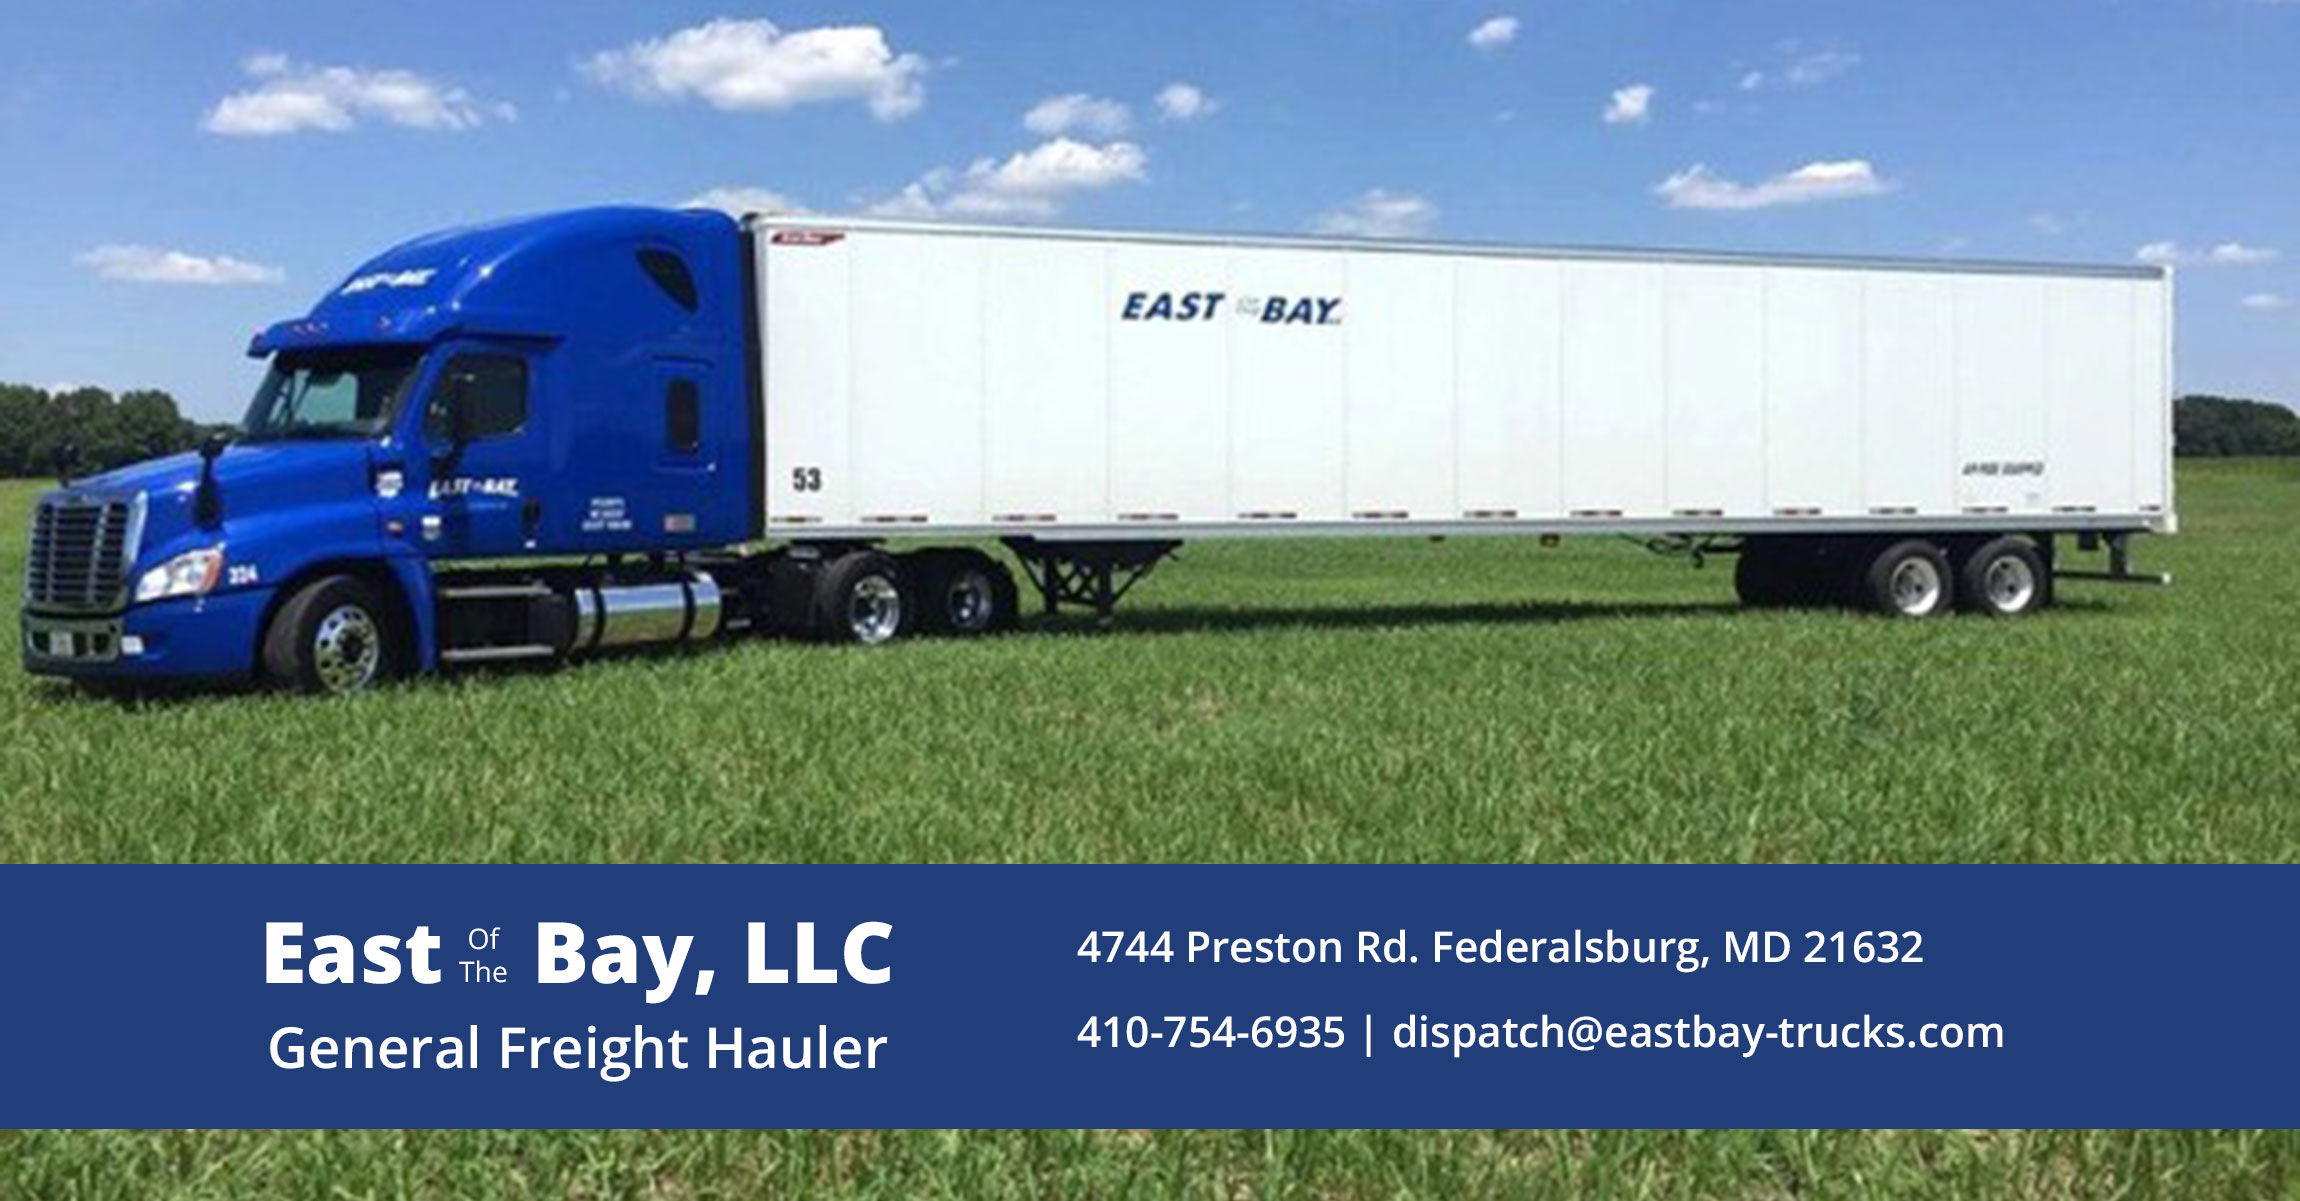 East of the Bay, LLC is a high quality trucking company.